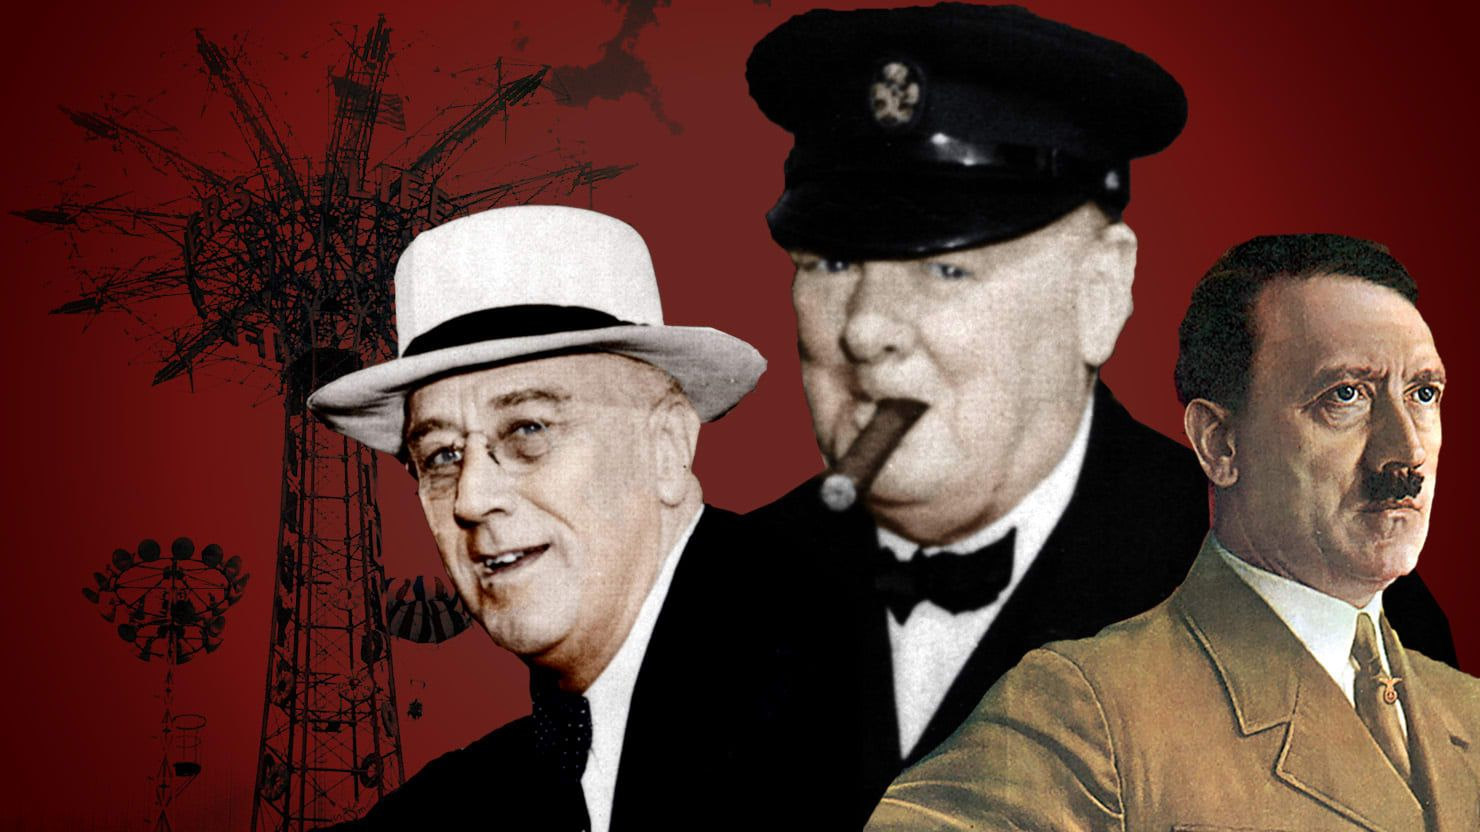 Did Brits Kill New York City Cops to Get U.S. into WWII?